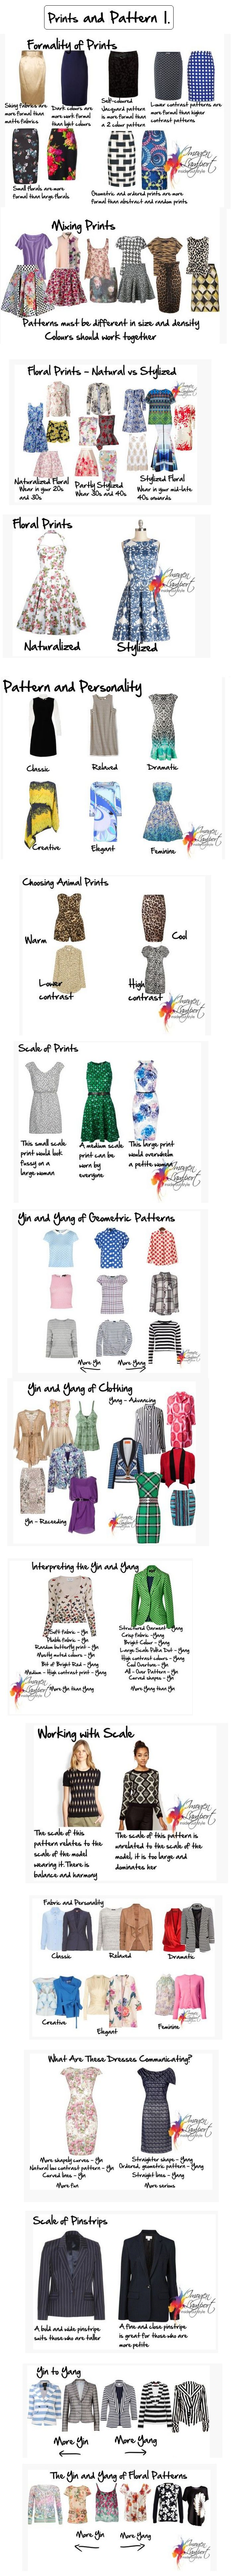 Prints and Patterns, personality, style, Imogen Lamport, Wardrobe Therapy, Inside out Style blog, Bespoke Image, Image Consultant, Colour Analysis